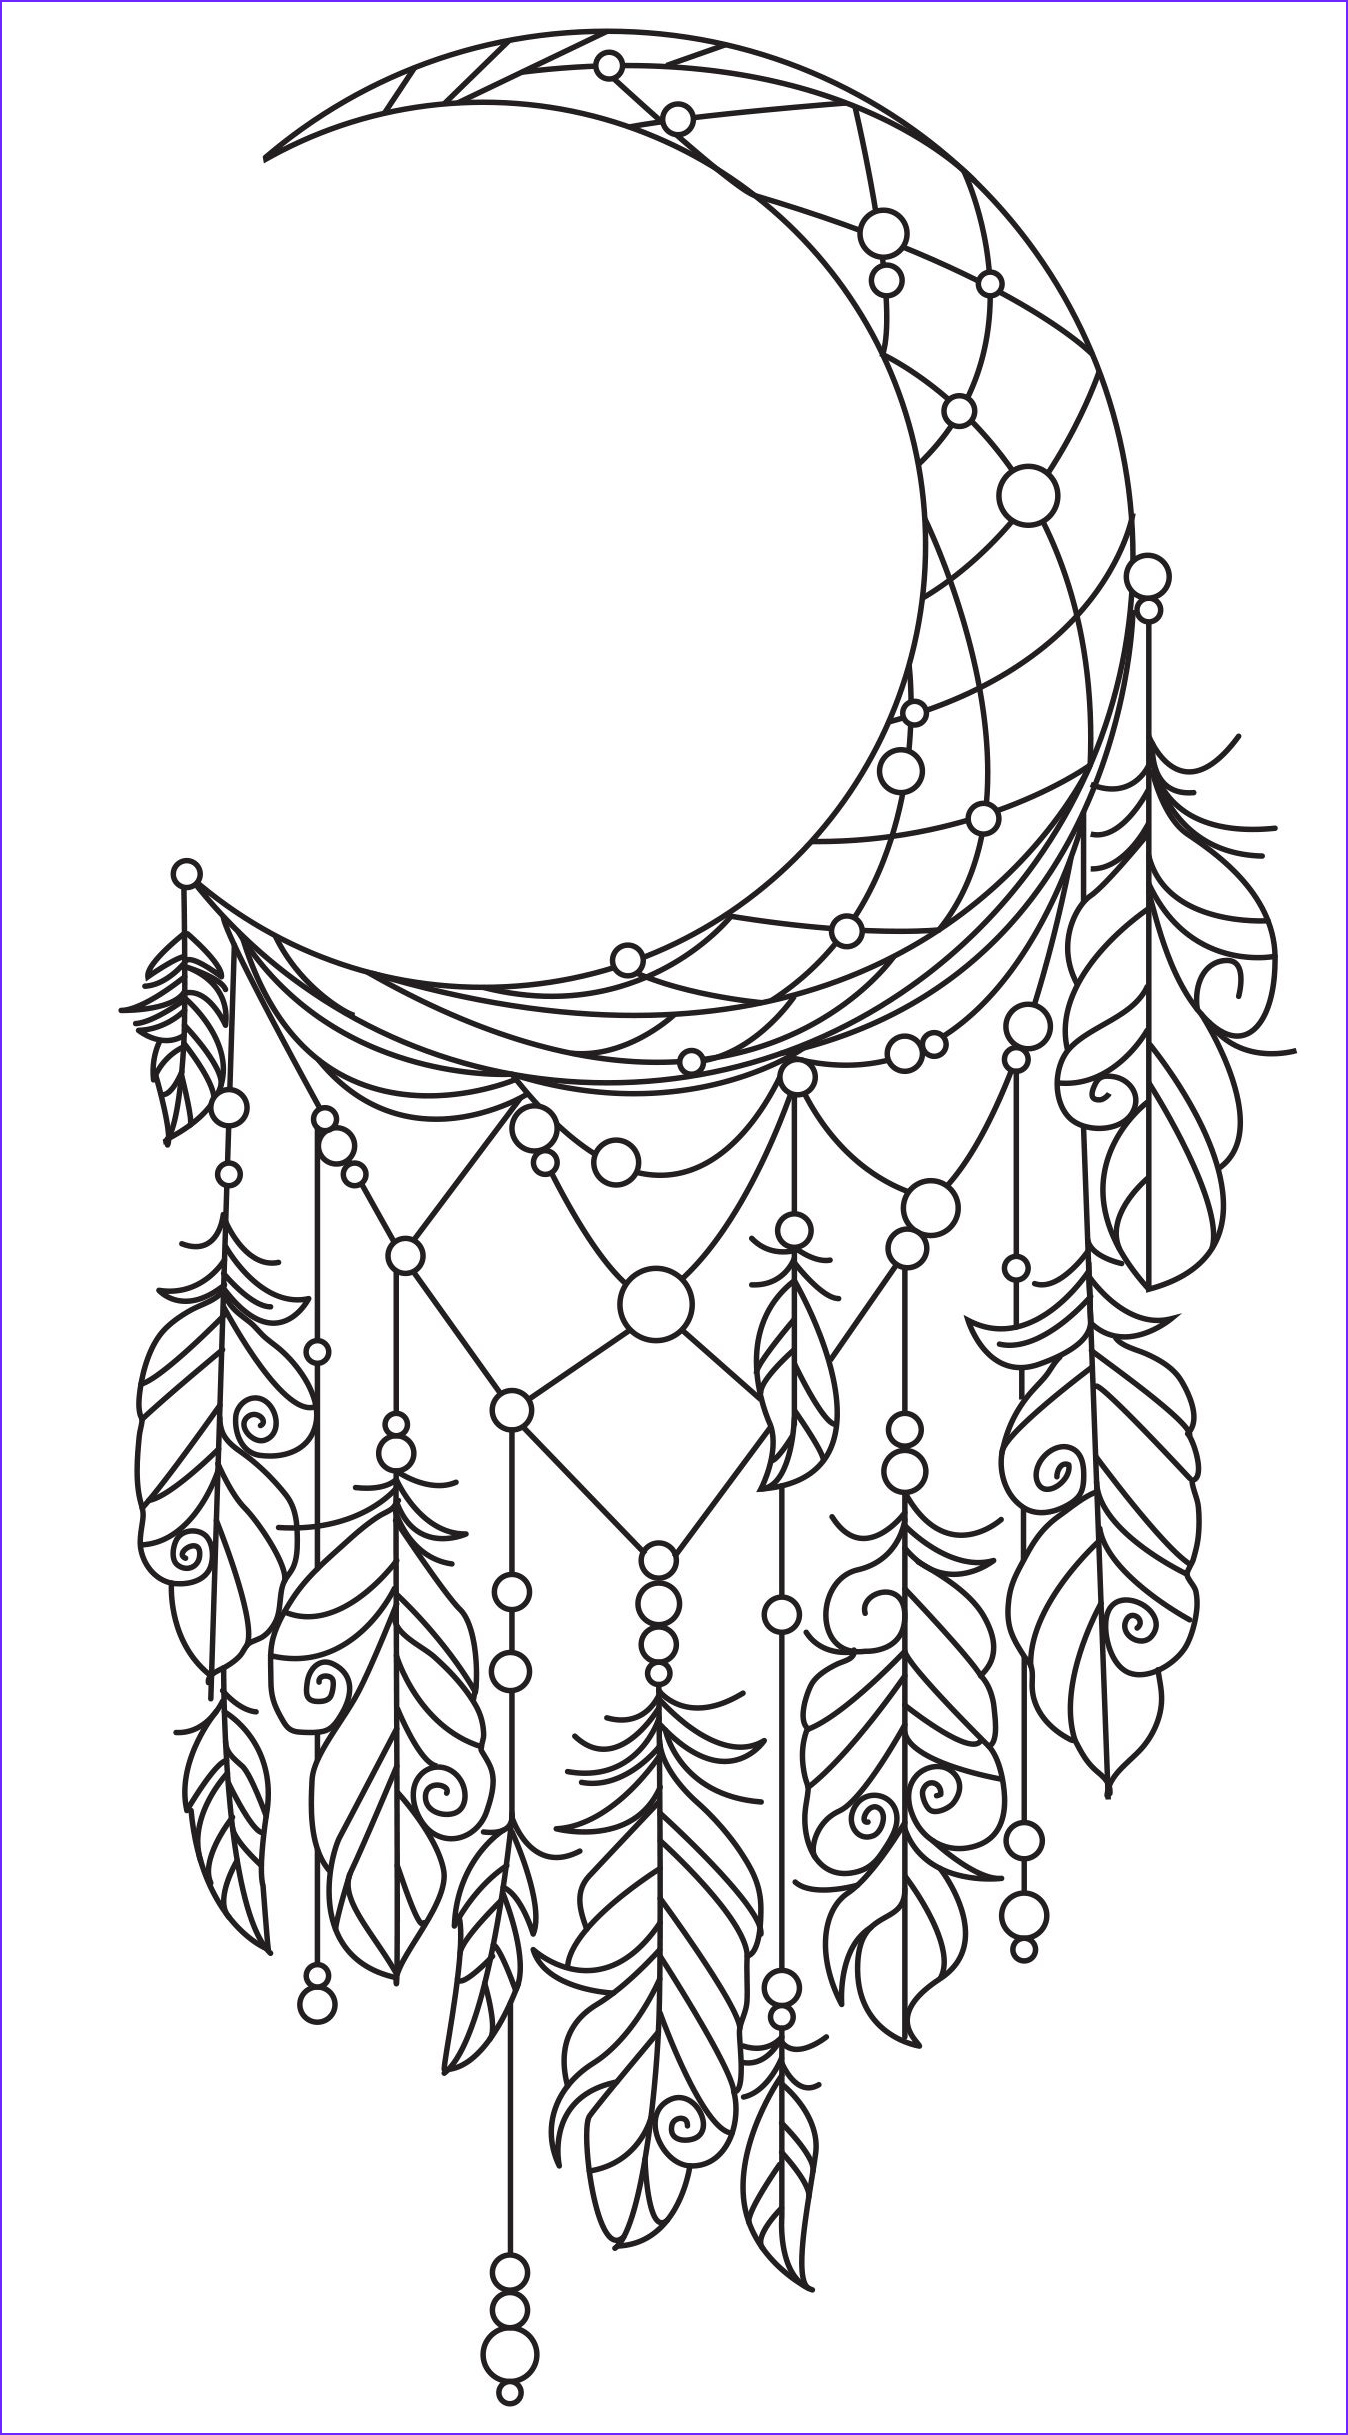 Dreamcatcher Coloring Pages Inspirational Photos Pin by Patty Baa On Great Items